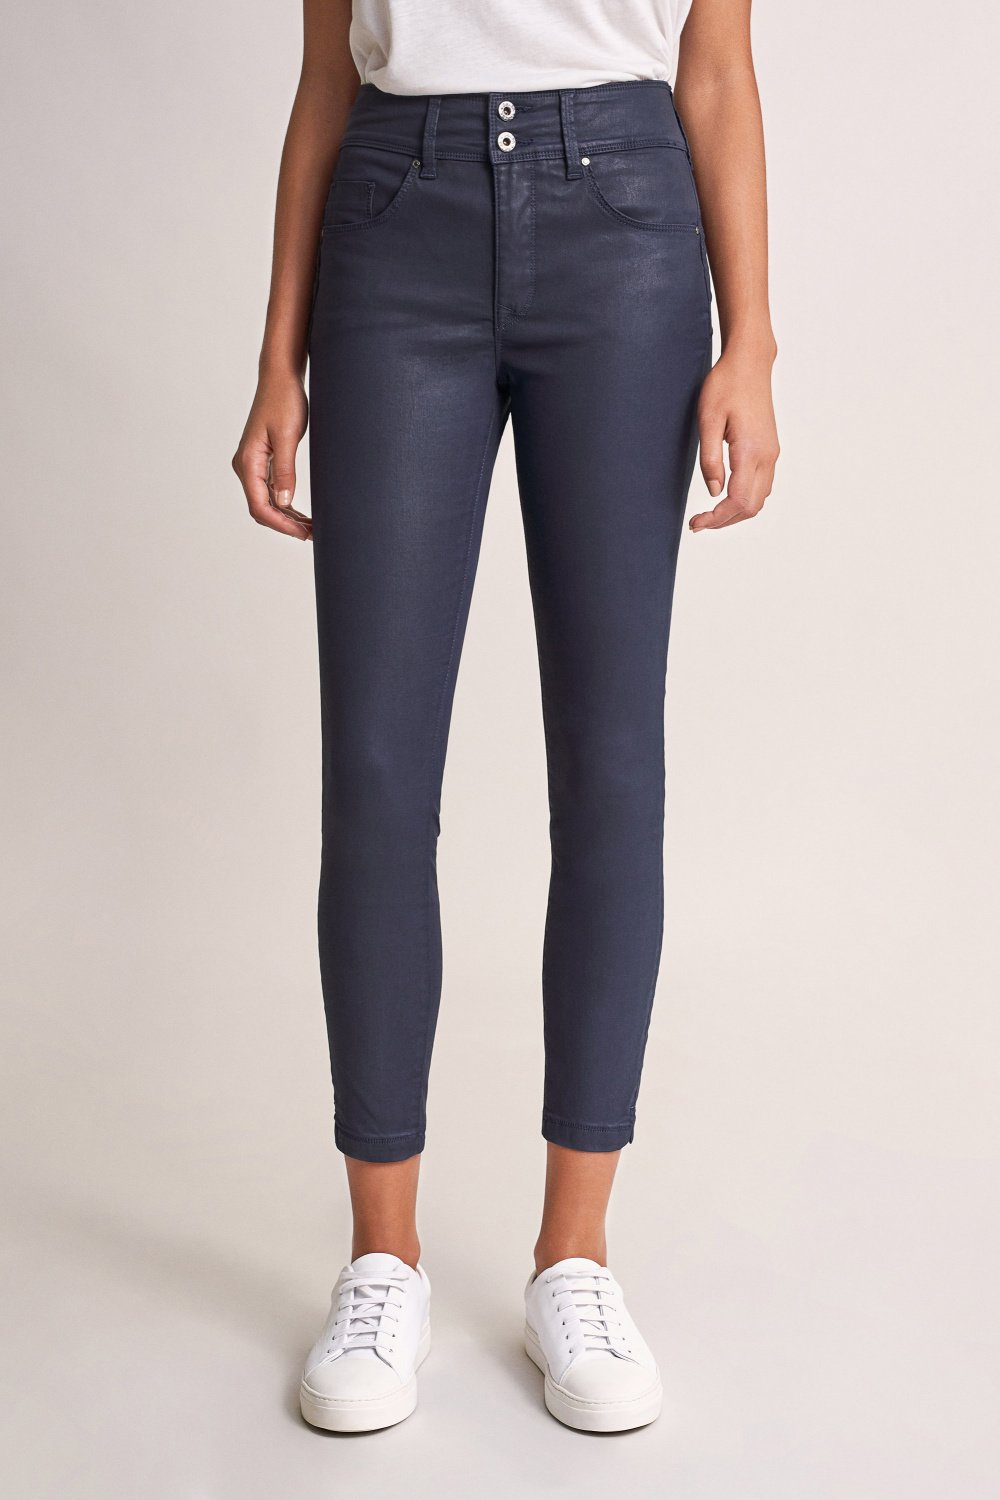 Push In Secret capri trousers - Salsa